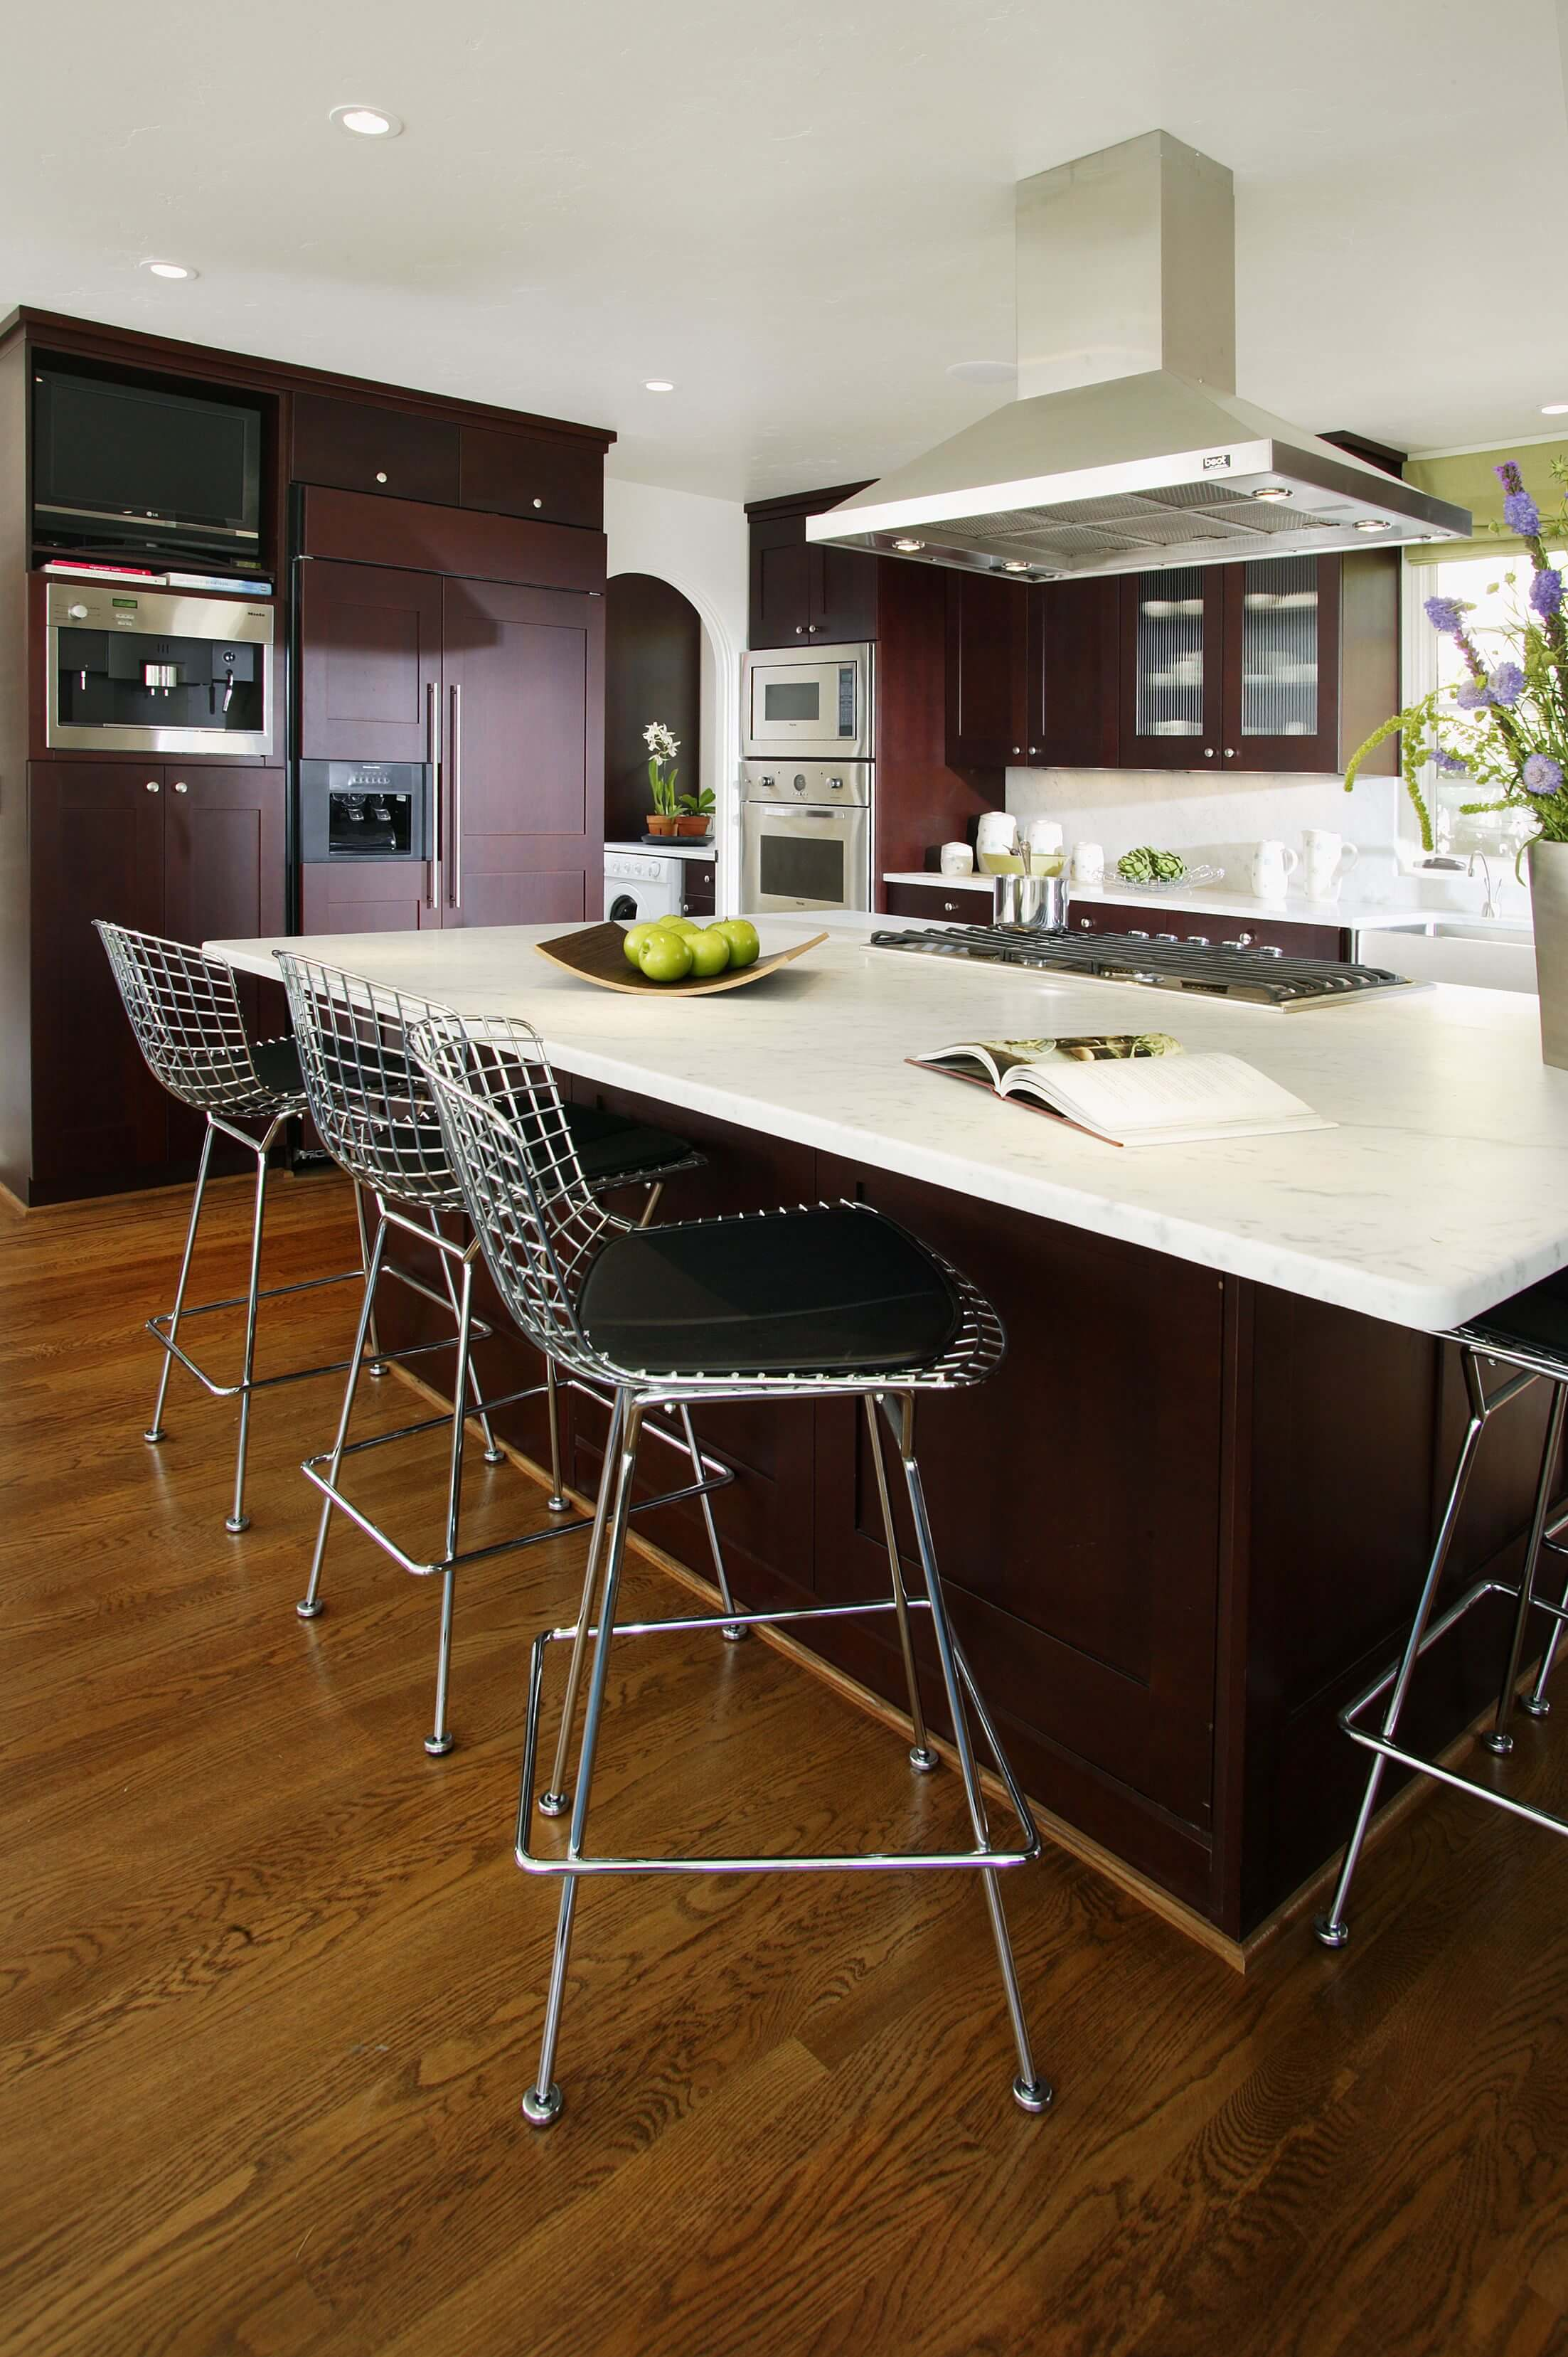 High Contrast Look In This Kitchen, Courtesy Of Dark Stained Cabinetry,  White Countertops,